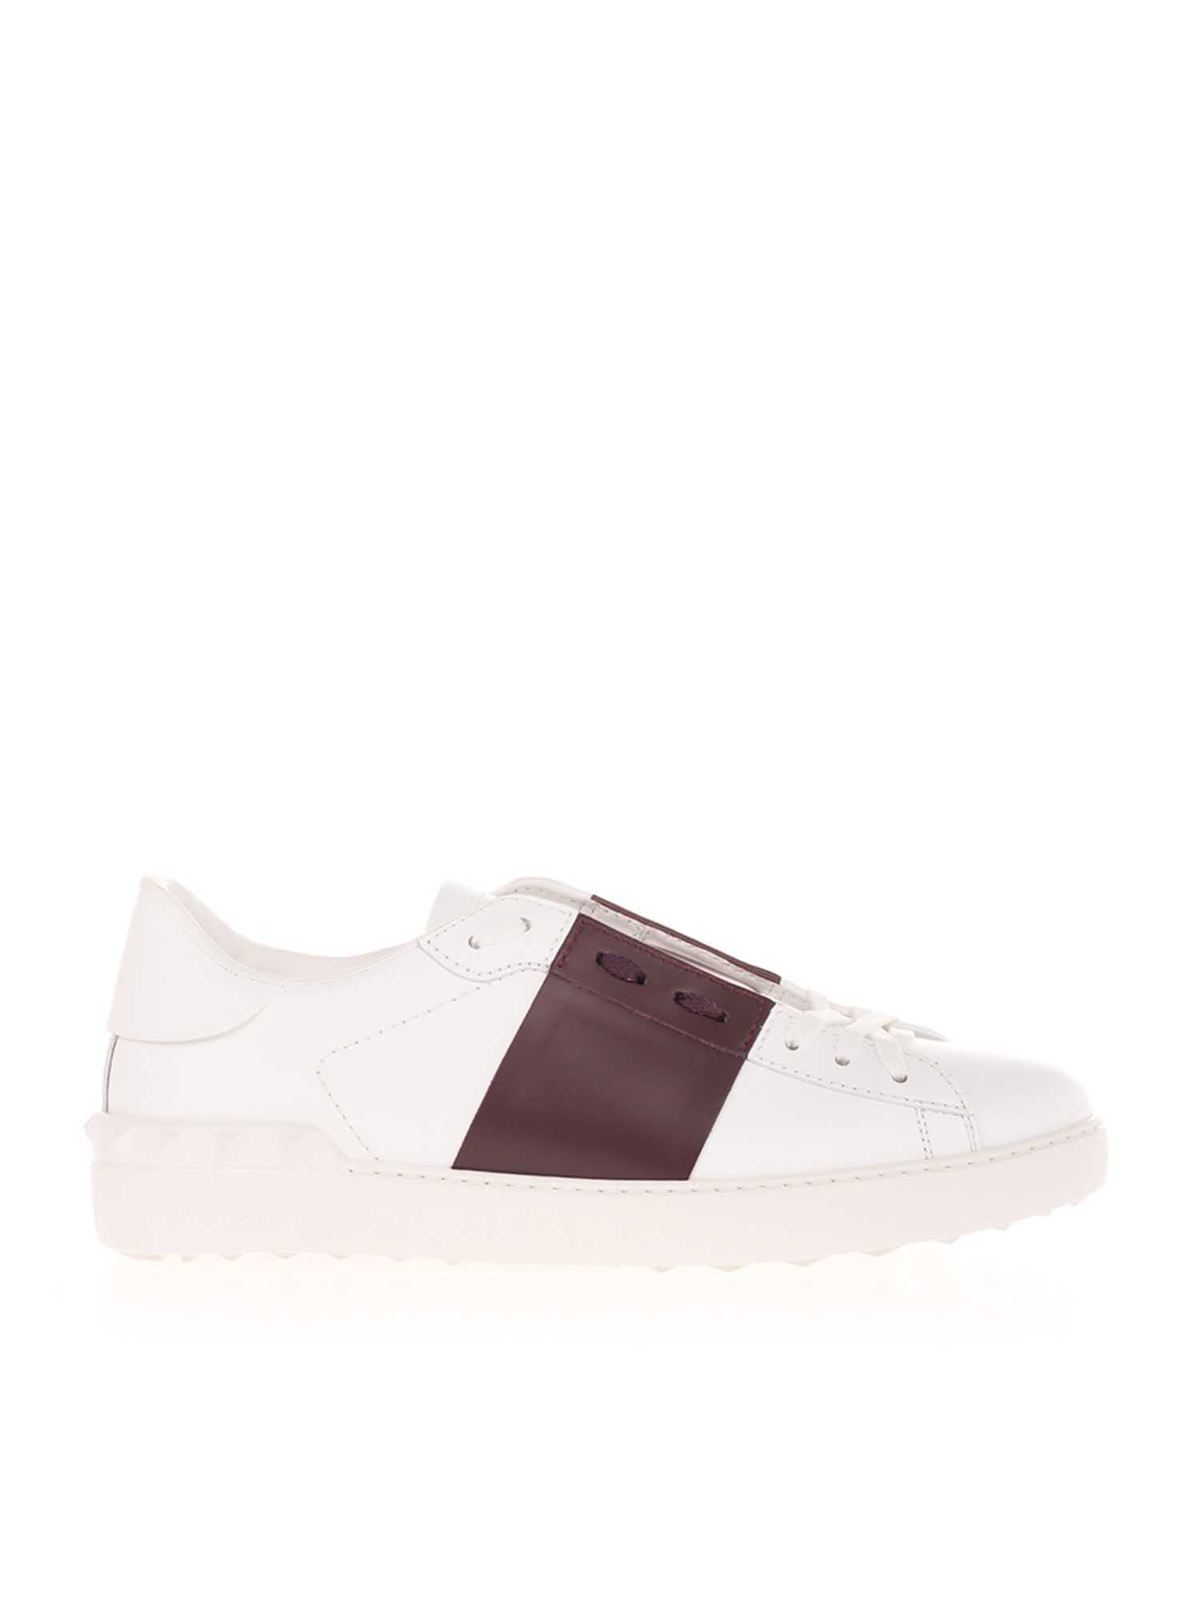 Valentino Leathers OPEN SNEAKERS IN WHITE AND BURGUNDY